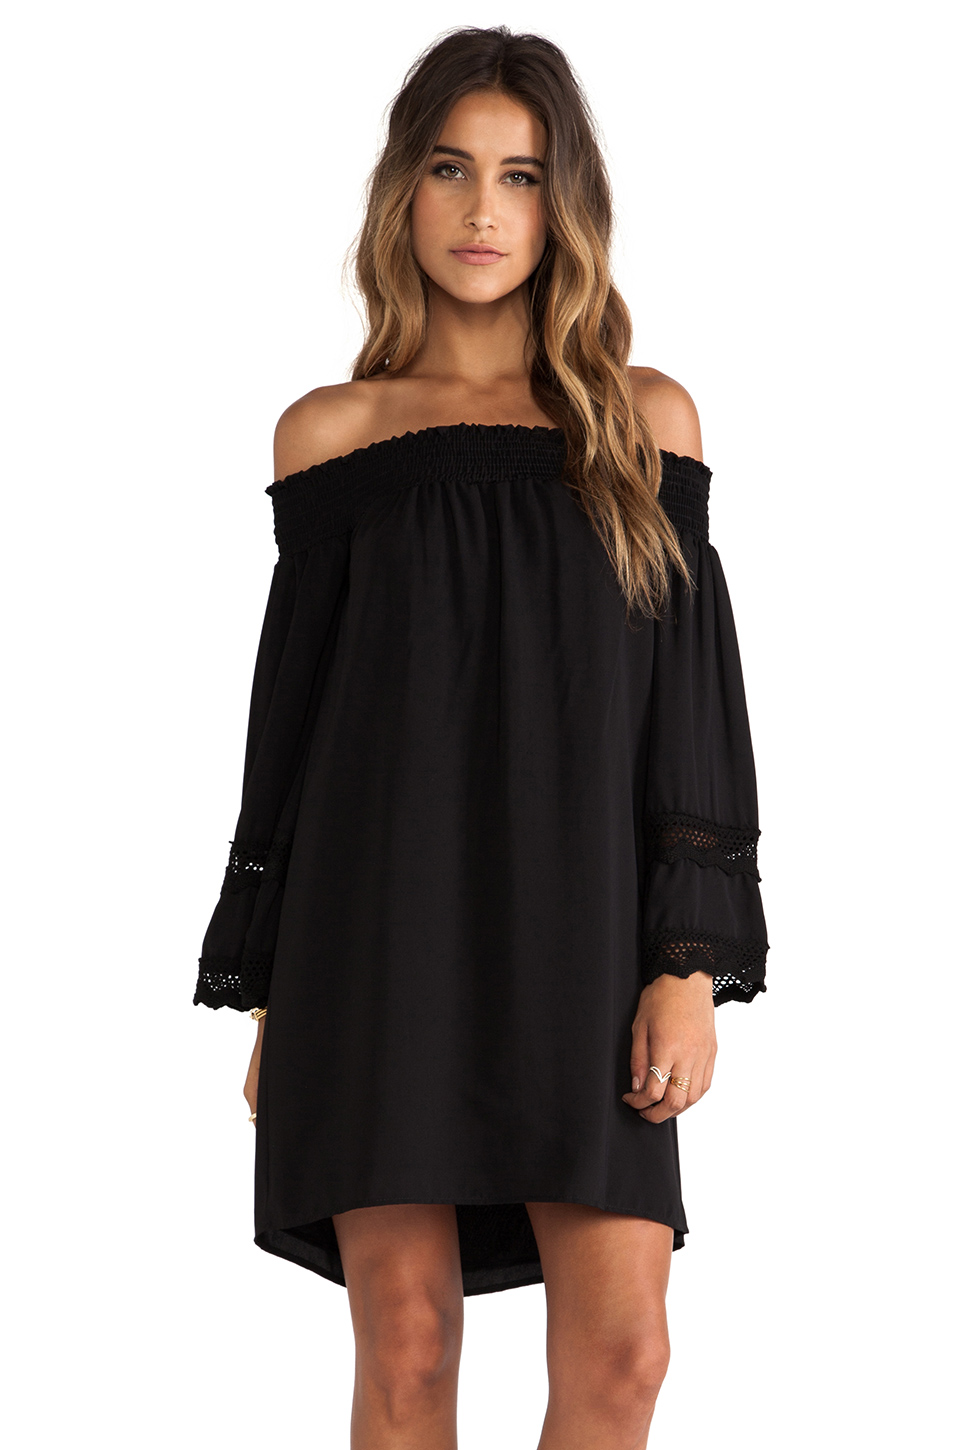 VAVA by Joy Han Harley Off Shoulder Dress in Black from REVOLVEclothing.com